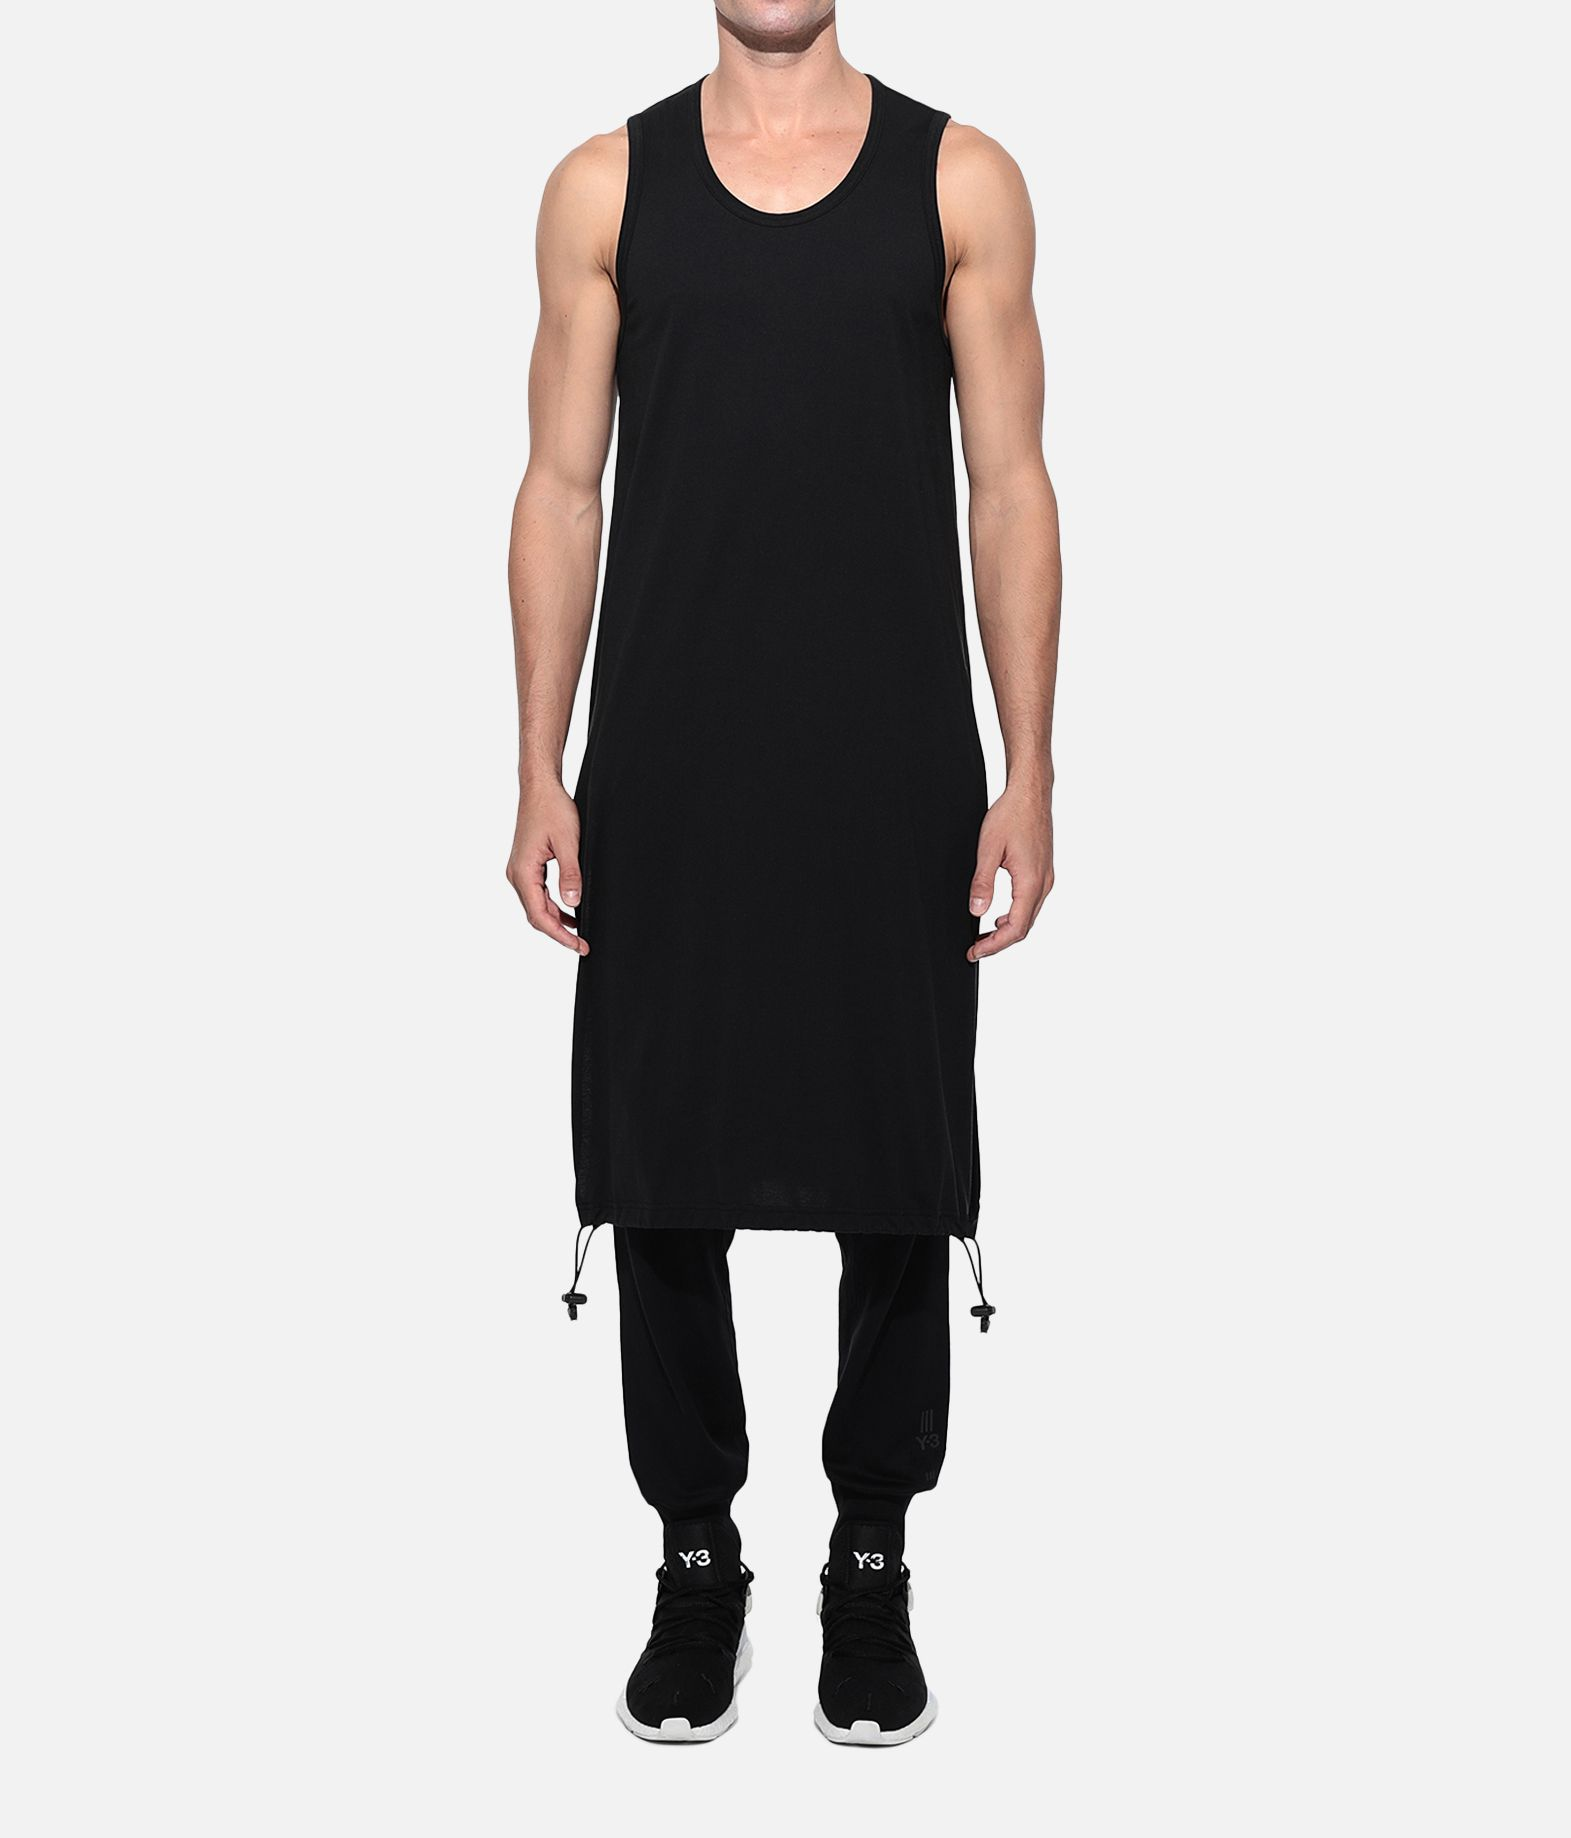 Y-3 Y-3 Drawstring Long Tank Top  Tank Man r